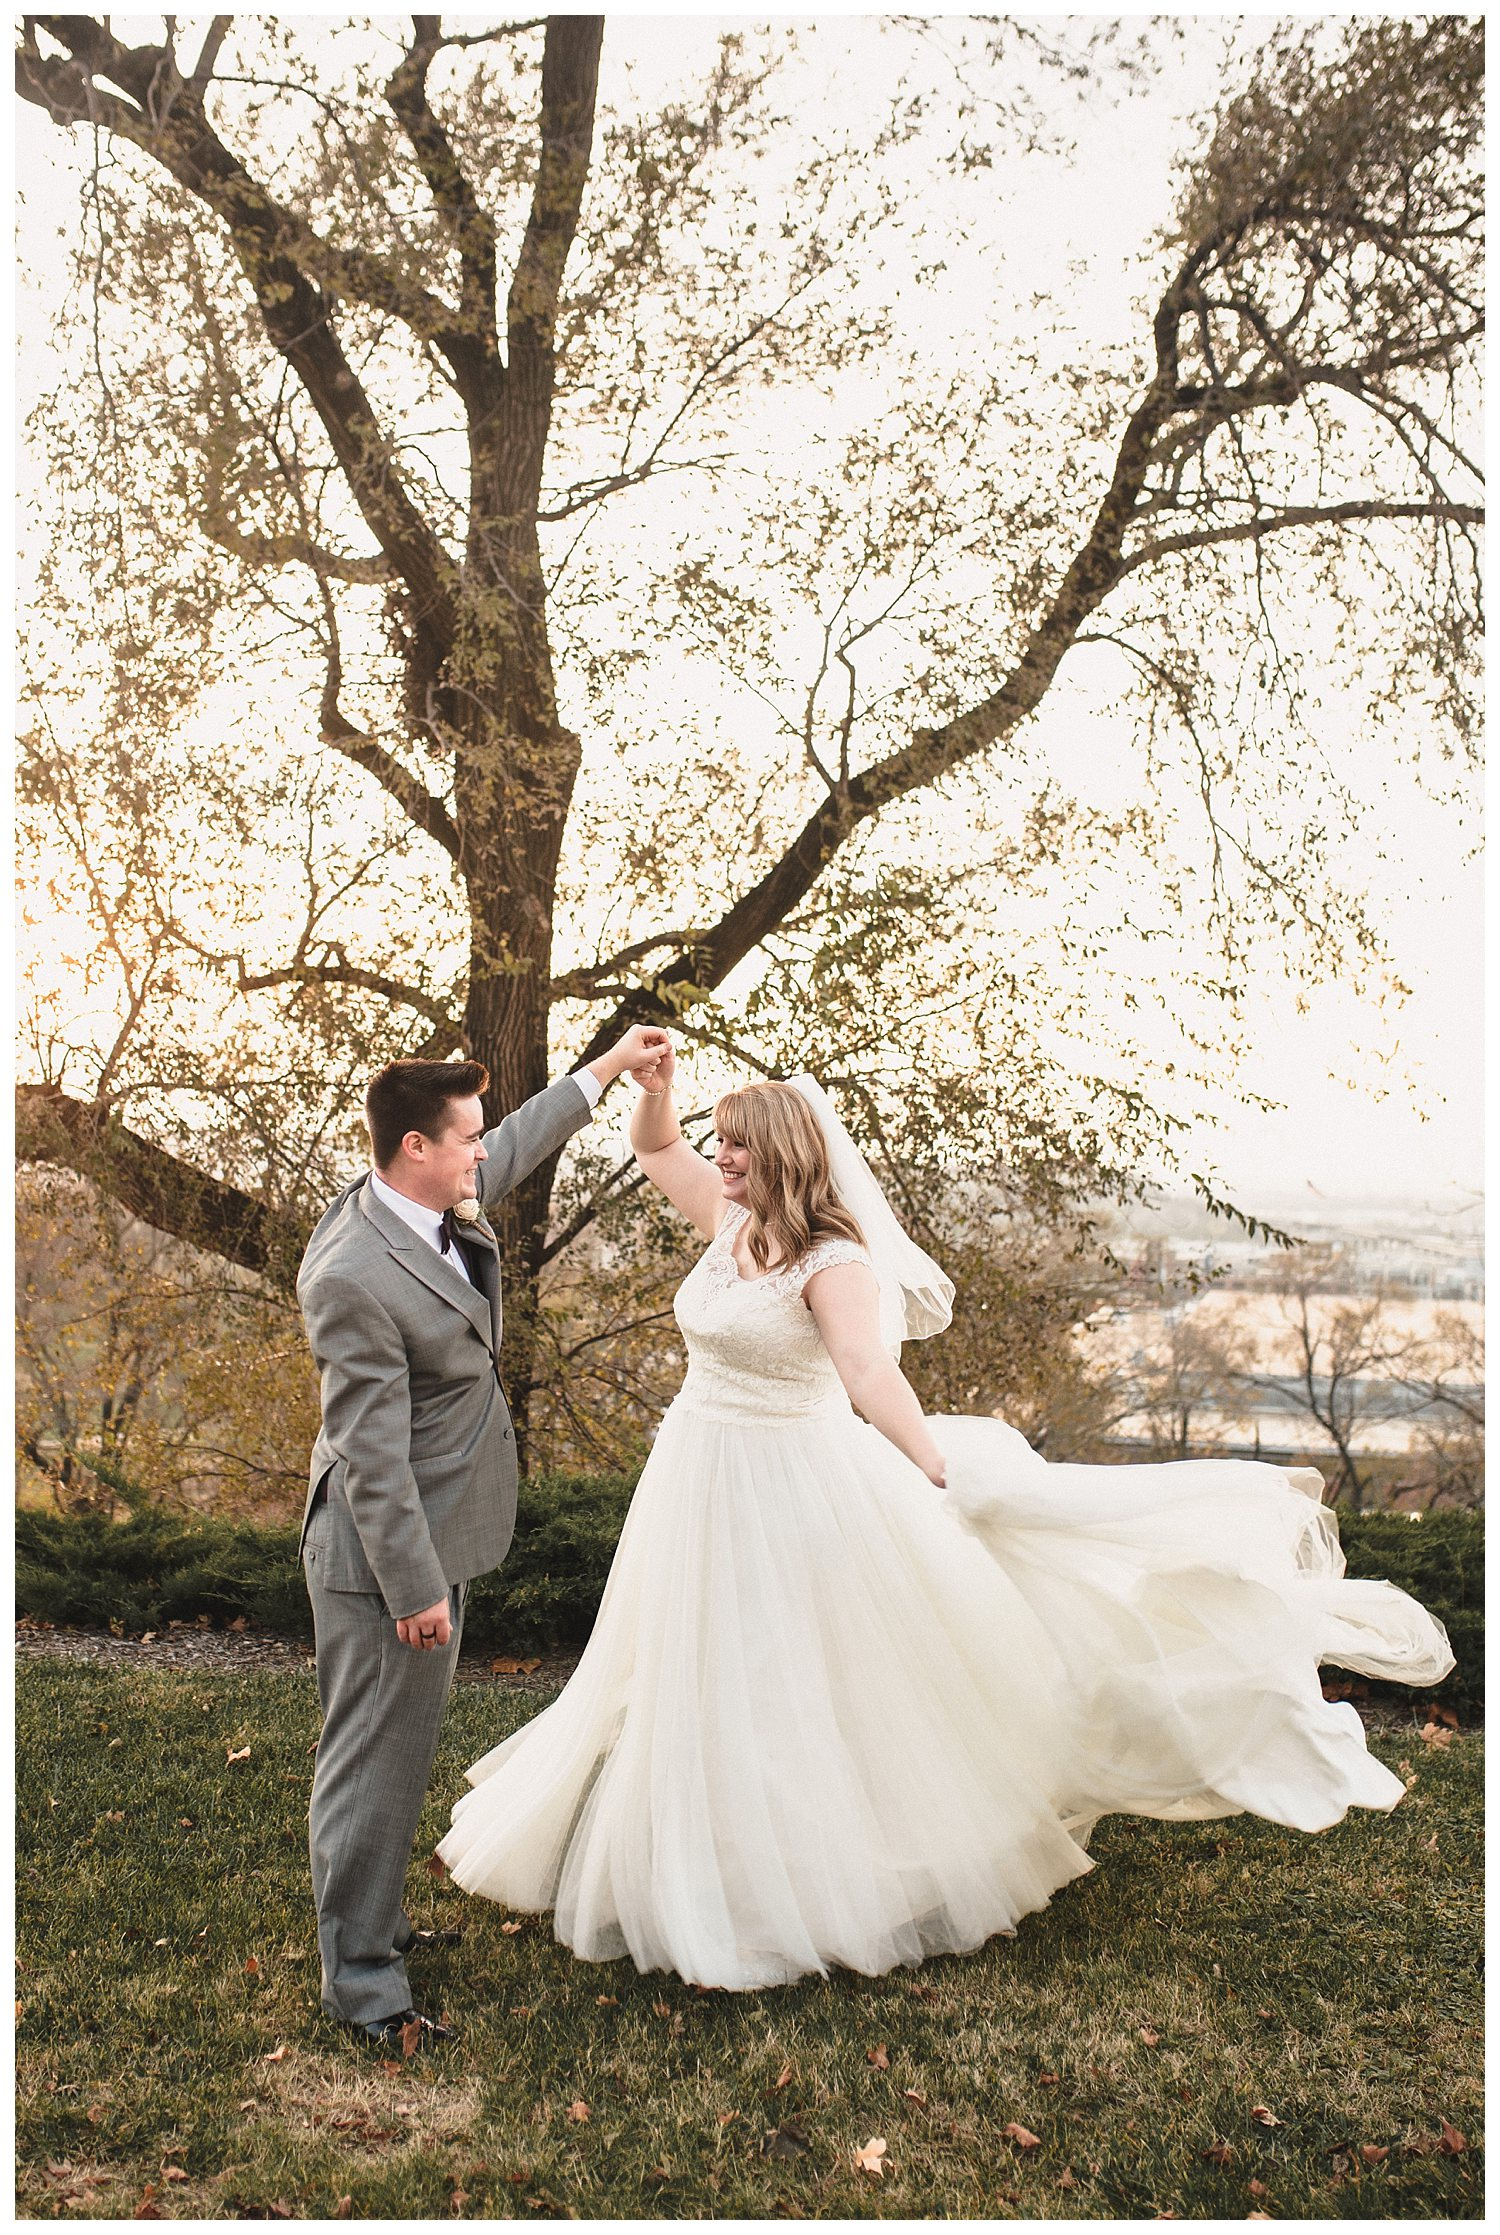 Kelsey_Diane_Photography_Loose_Mansion_Wedding_Photography_Kansas_City_Victor_Lyndsay_0371.jpg